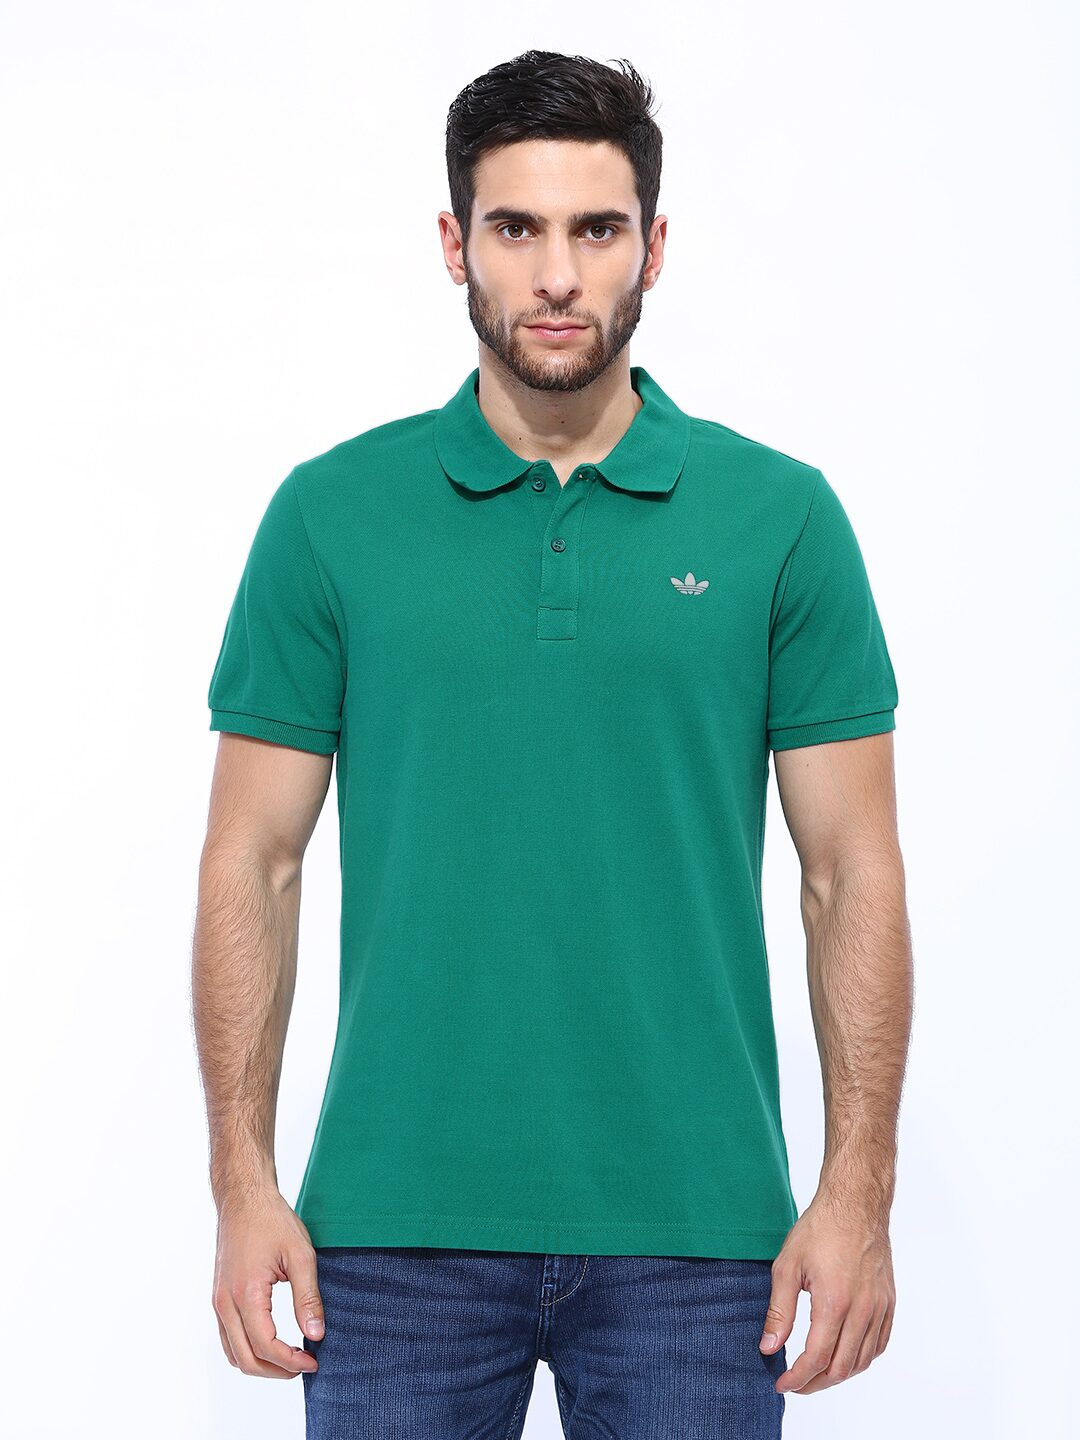 Adidas style code m30150 for Polo t shirts india